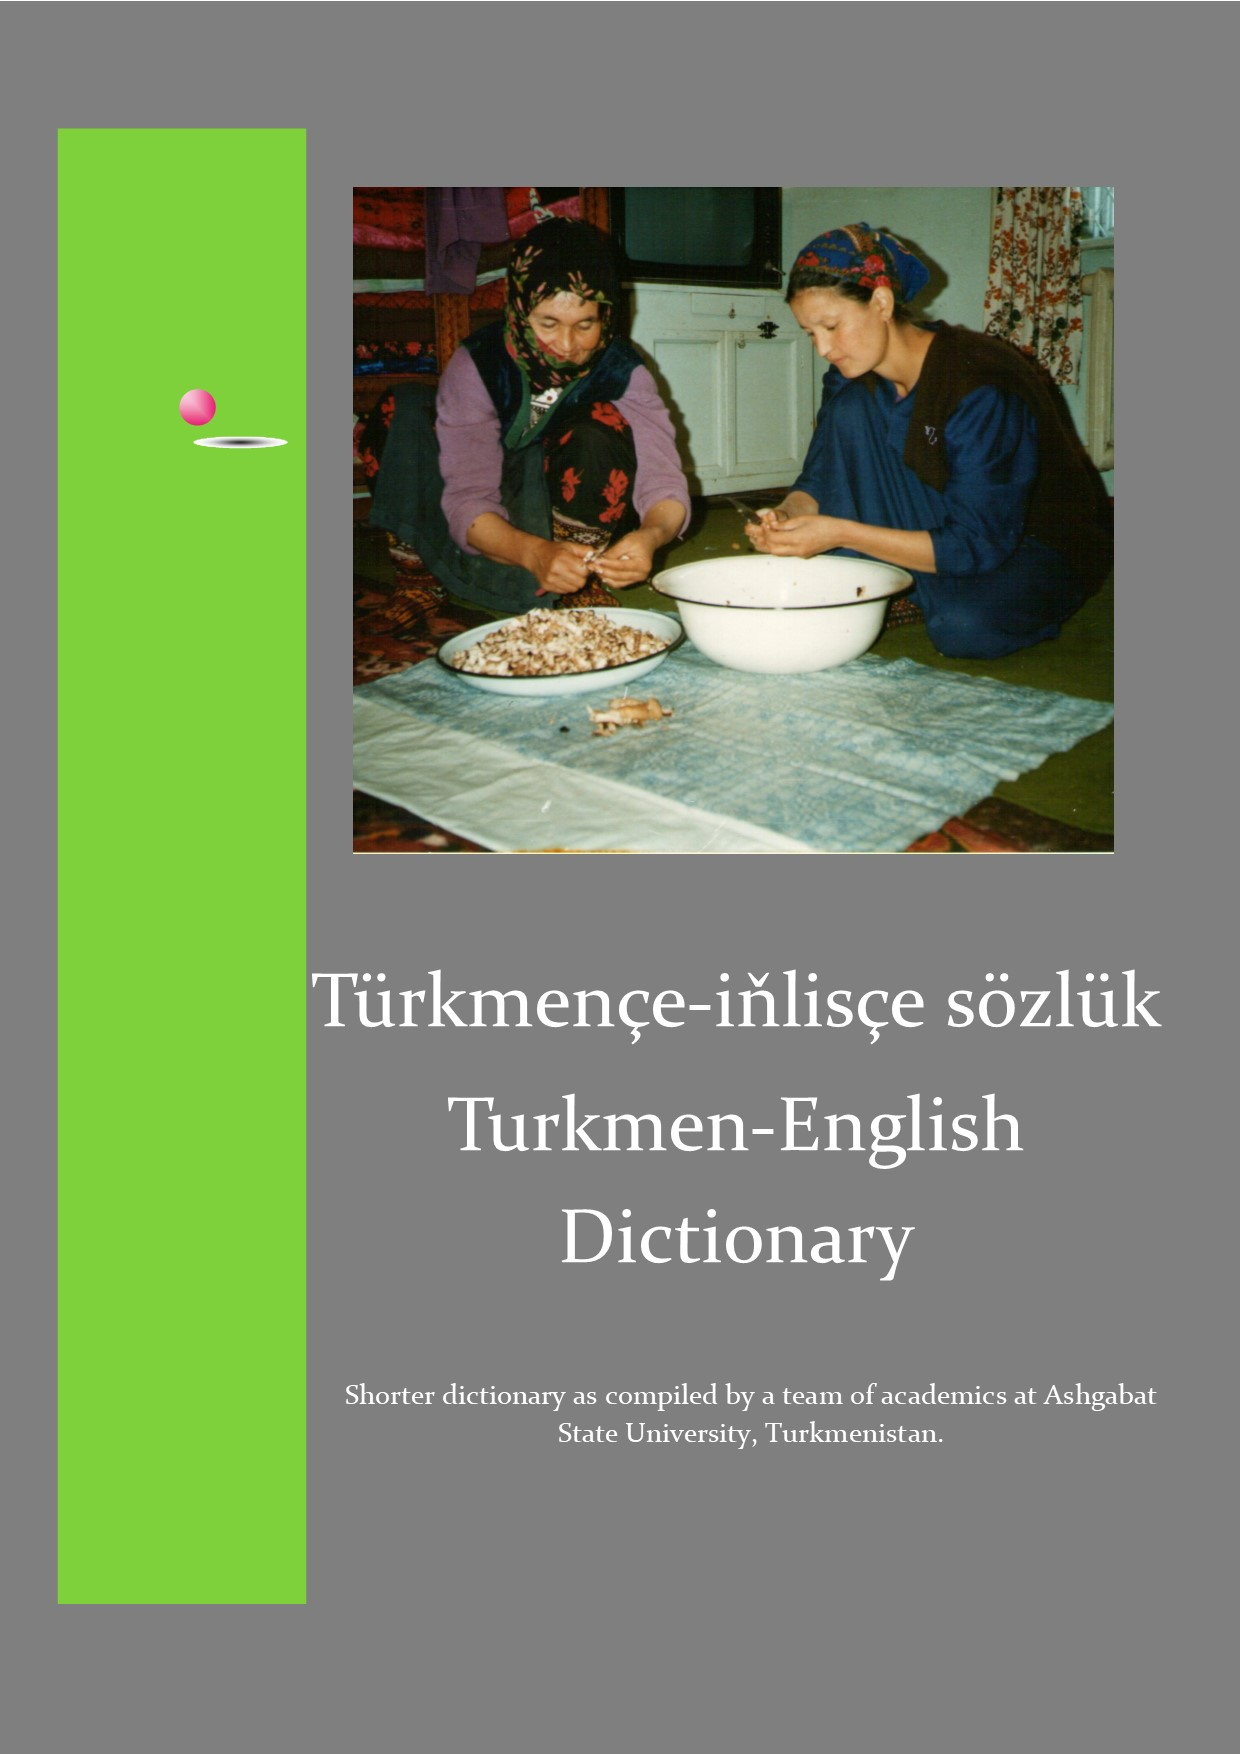 front page of dictionary